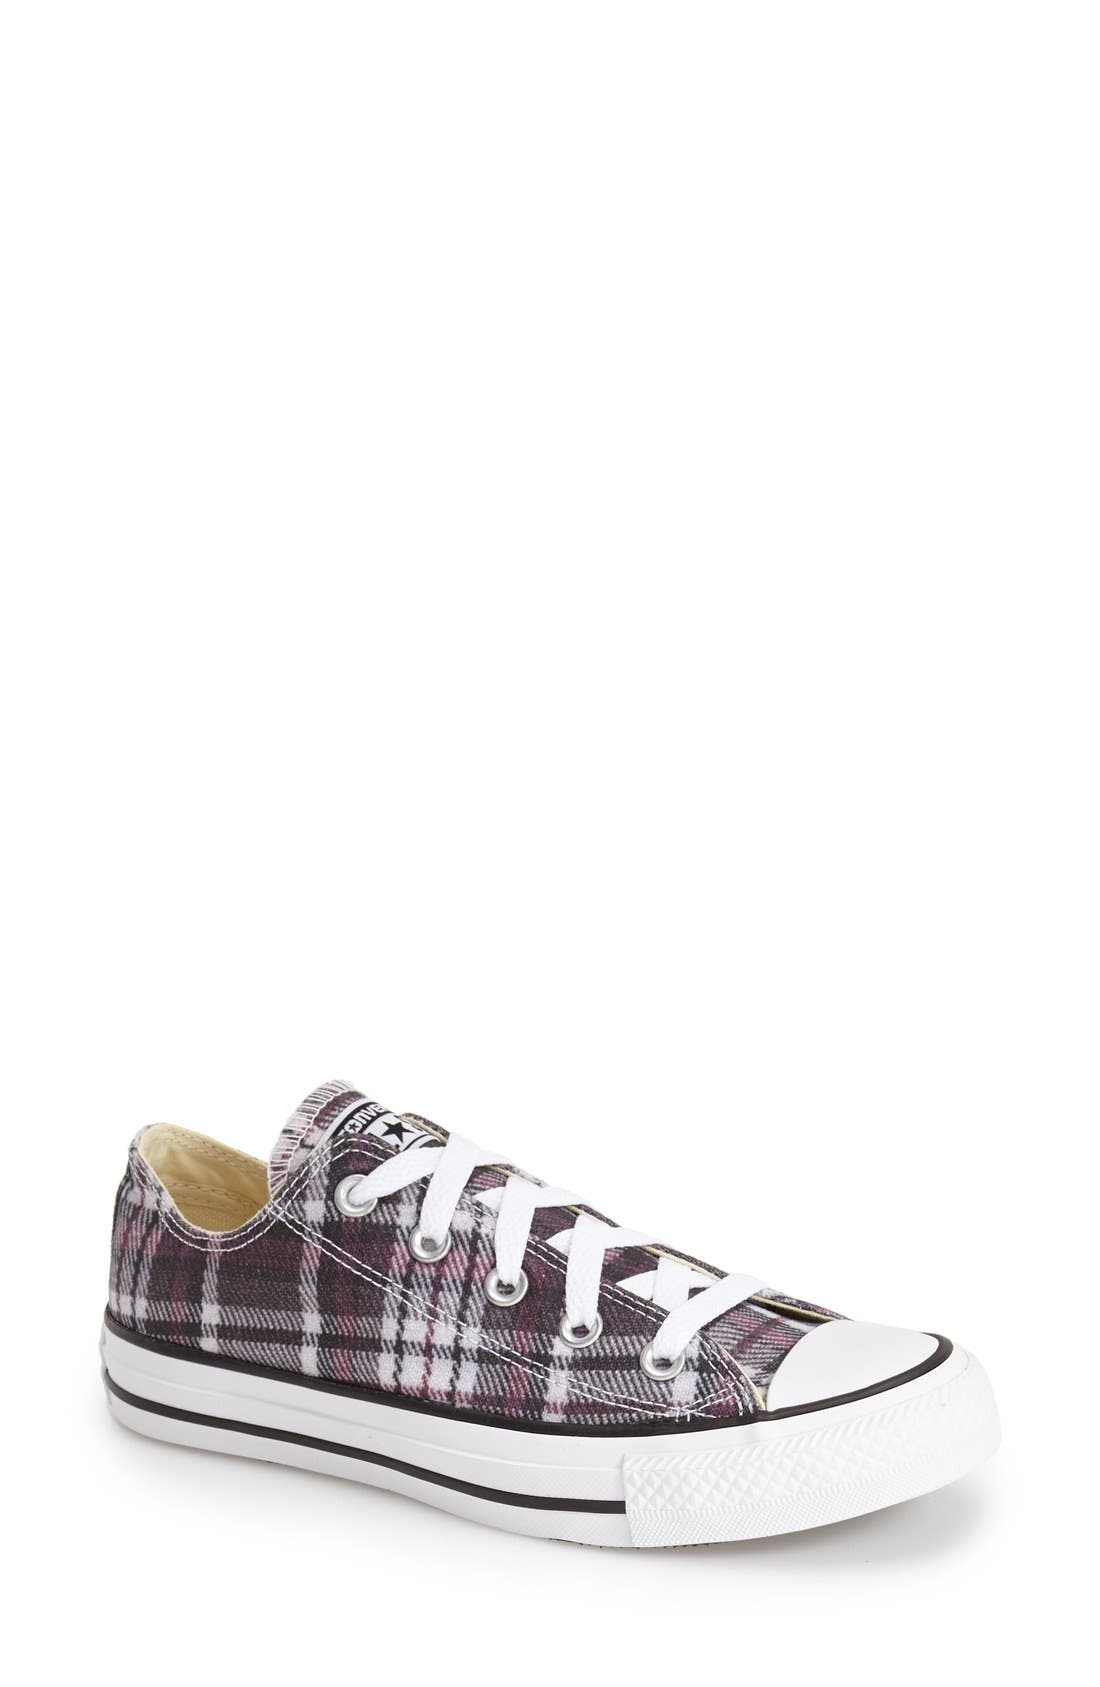 Main Image - Converse Chuck Taylor® All Star® Plaid Low Top Sneaker (Women)